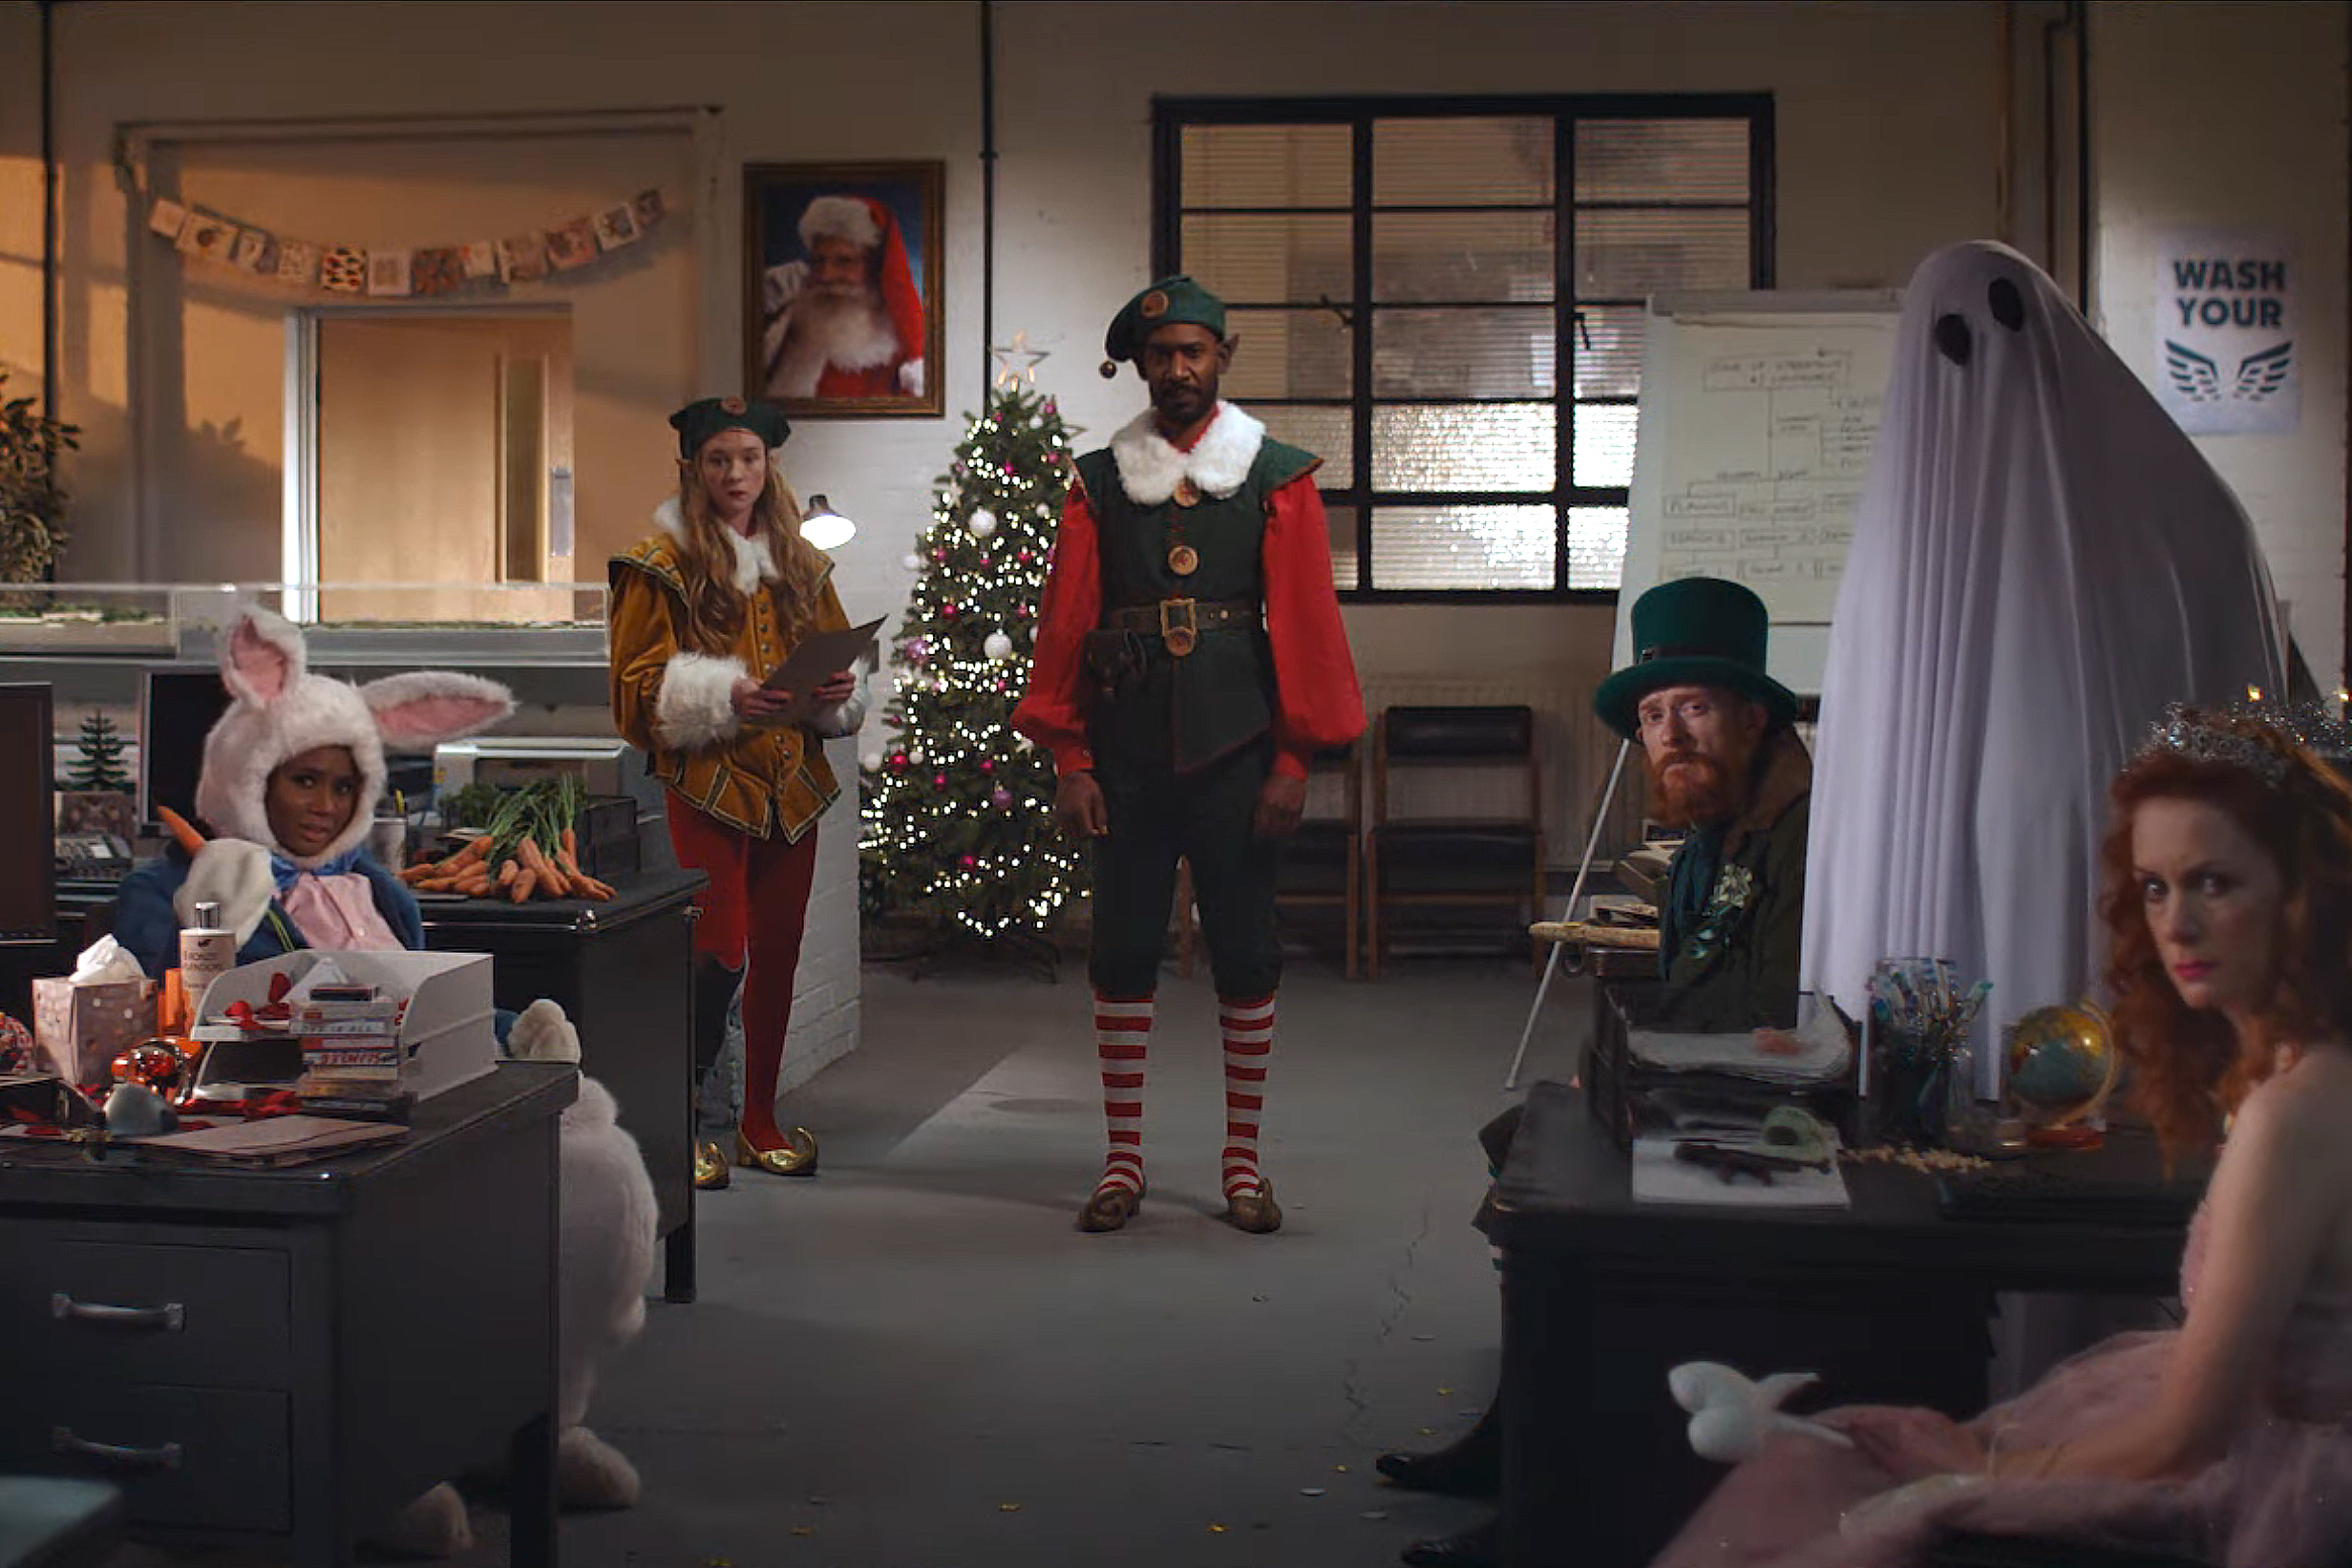 The Easter Bunny, Tooth Fairy and St. Patrick's Day leprechaun argue about Christmas in Channel 4's absurd holiday ad